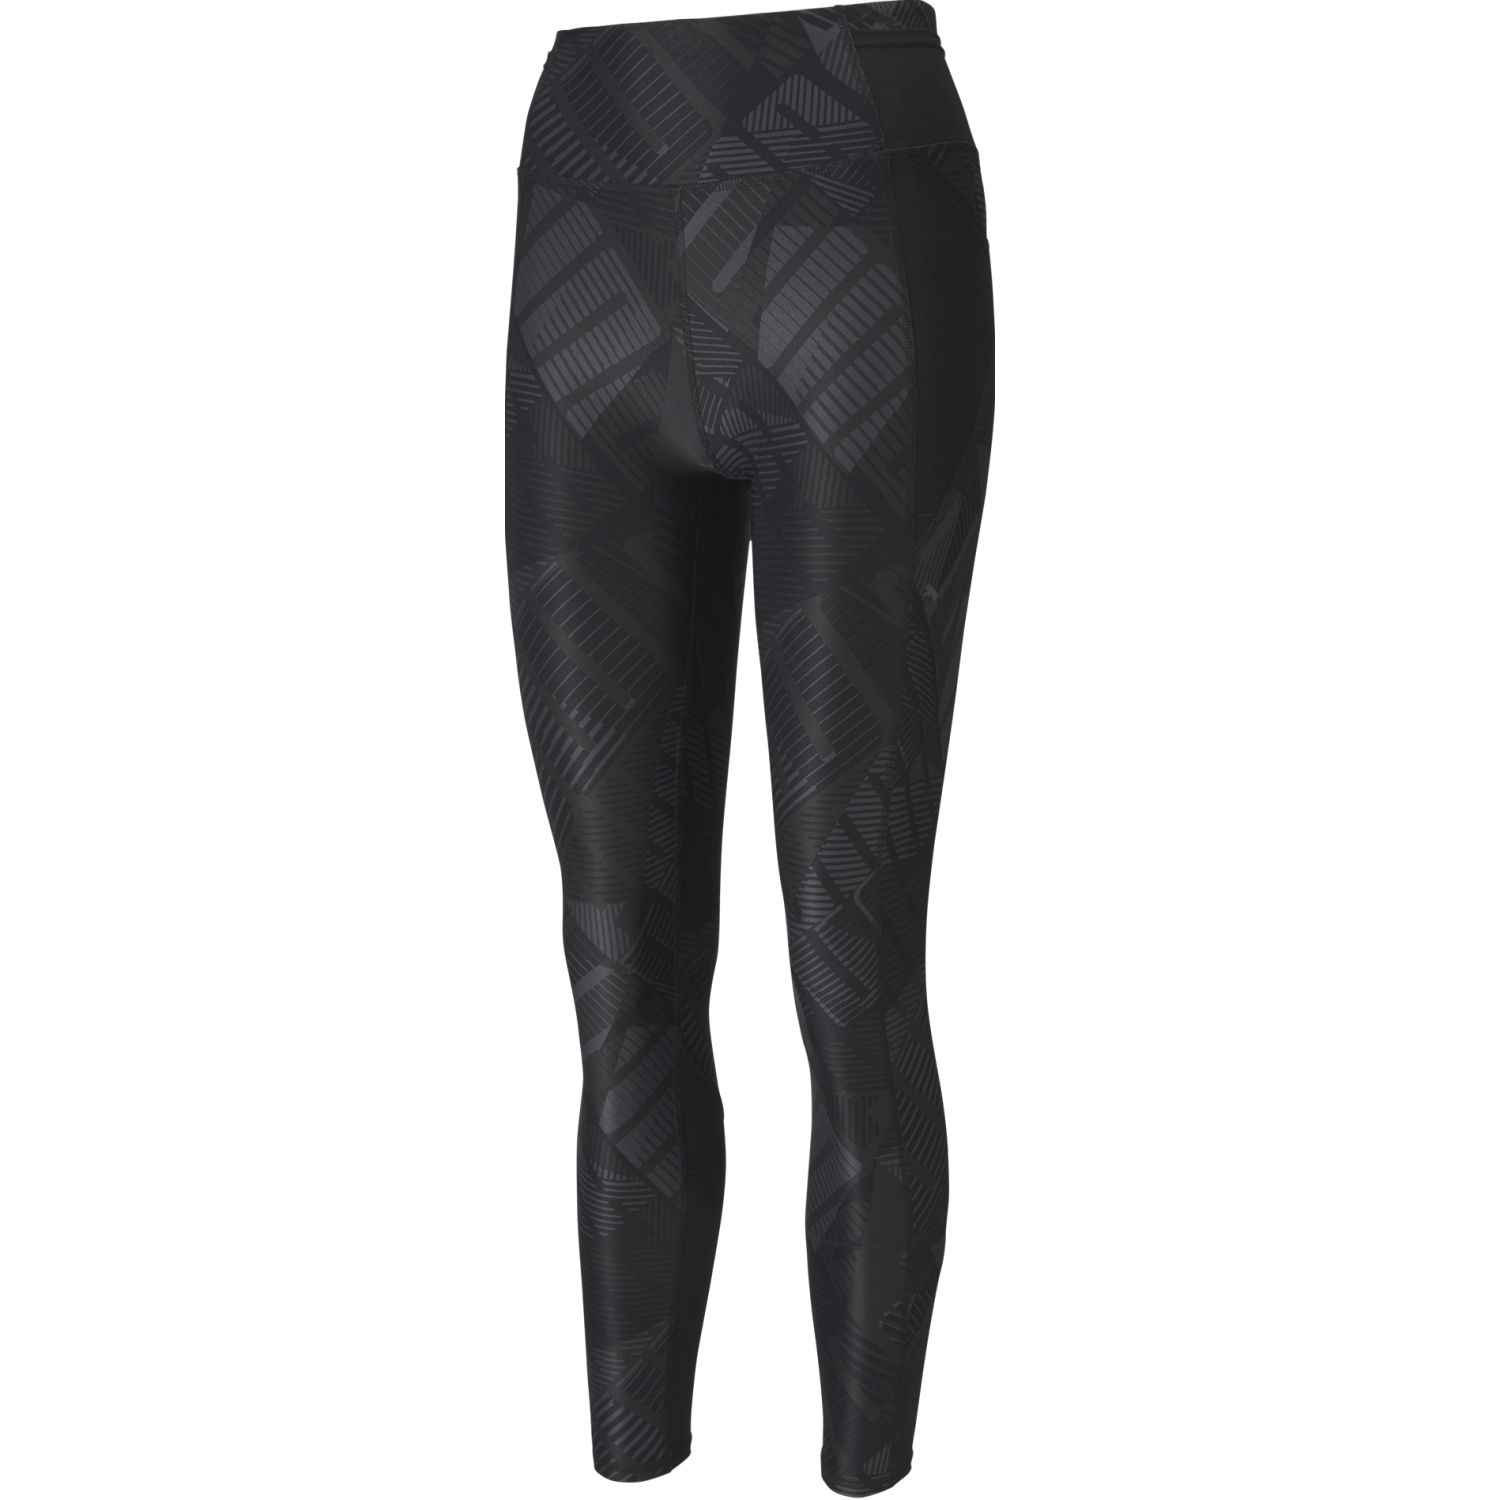 Puma Be Bold AOP 7/8 Tight Camuflado Leggings Deportivos